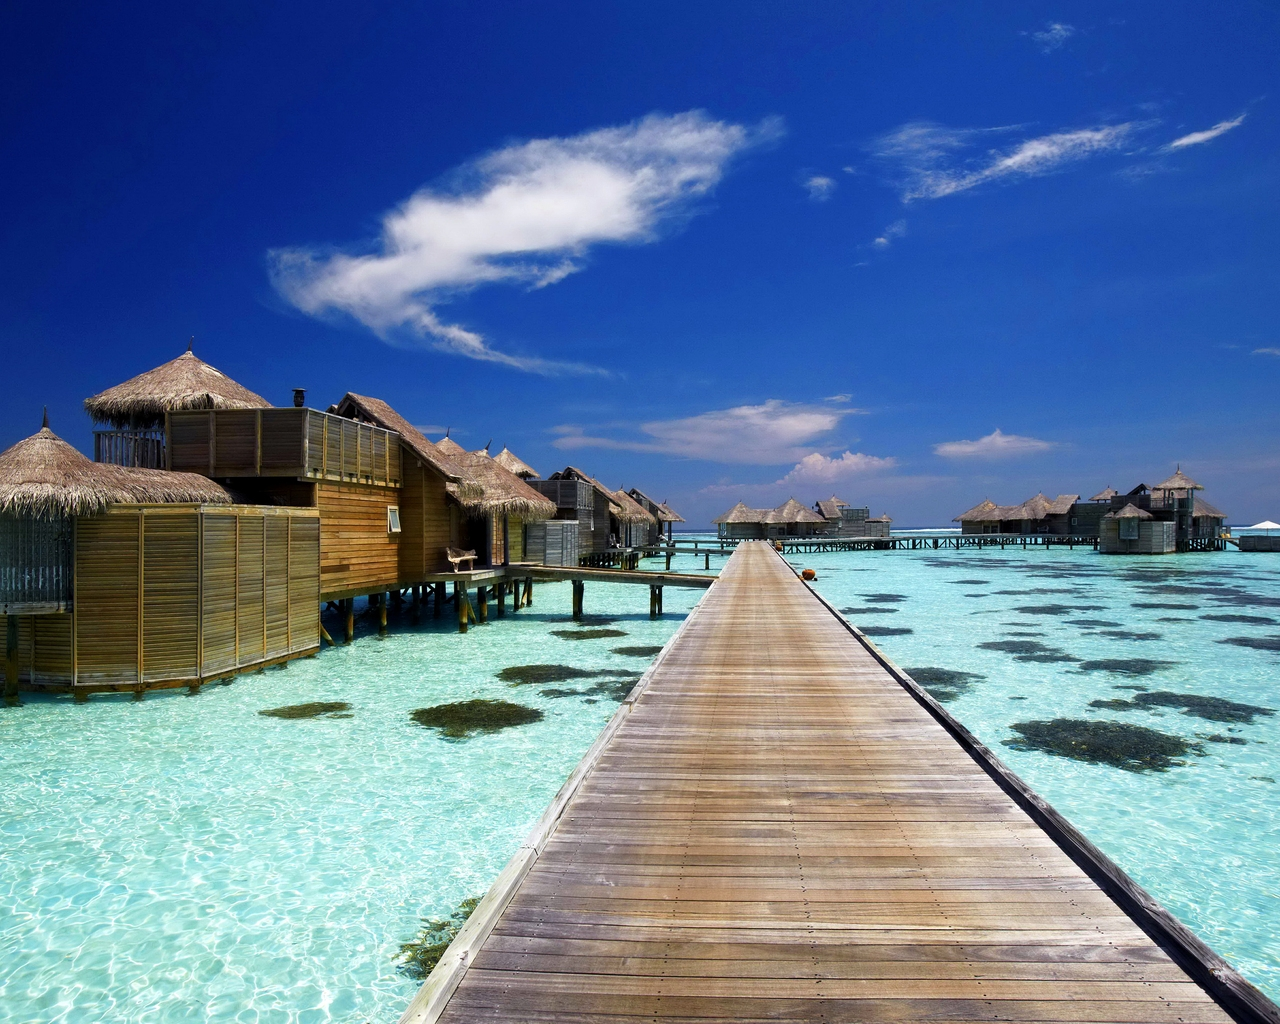 Luxury Resort in Maldives for 1280 x 1024 resolution